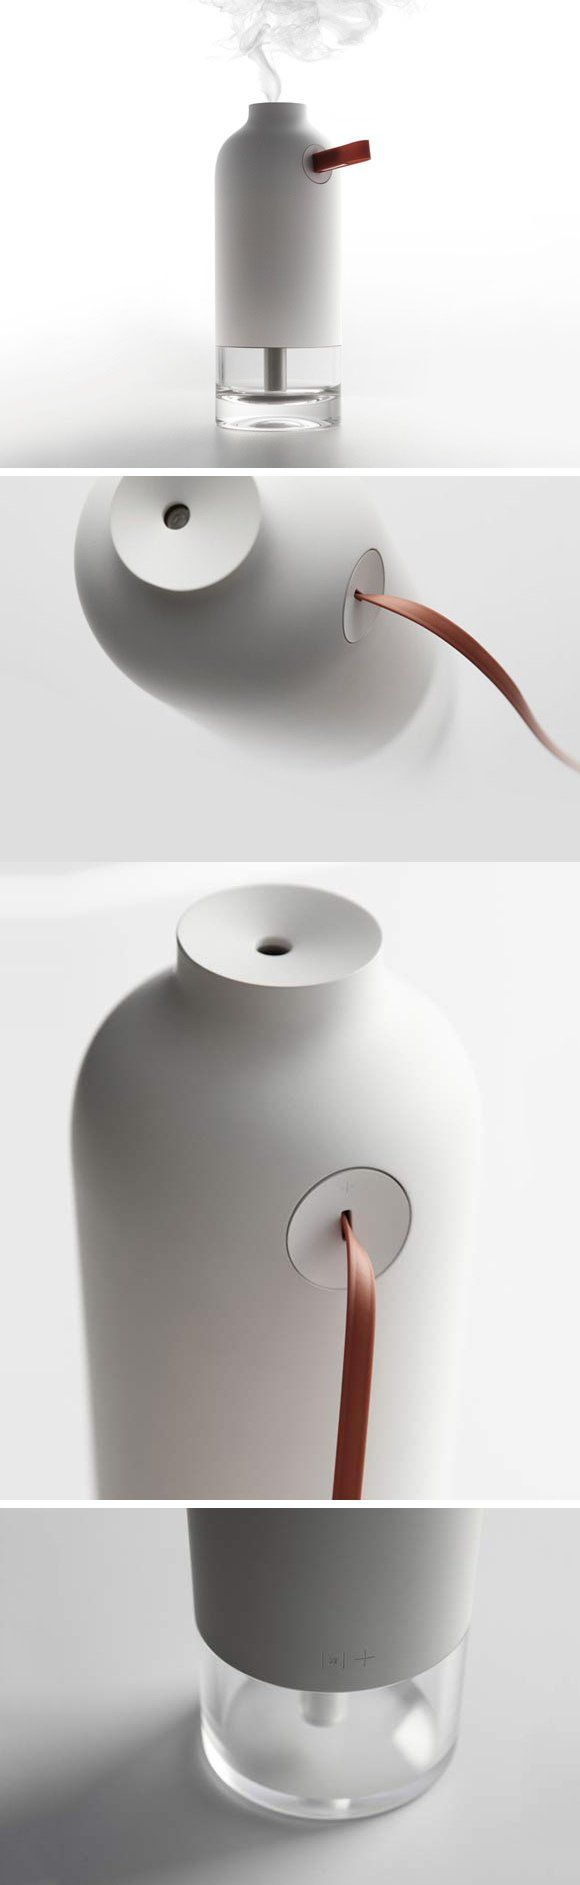 Bottle Humidifier by cloudandco for elevenplus